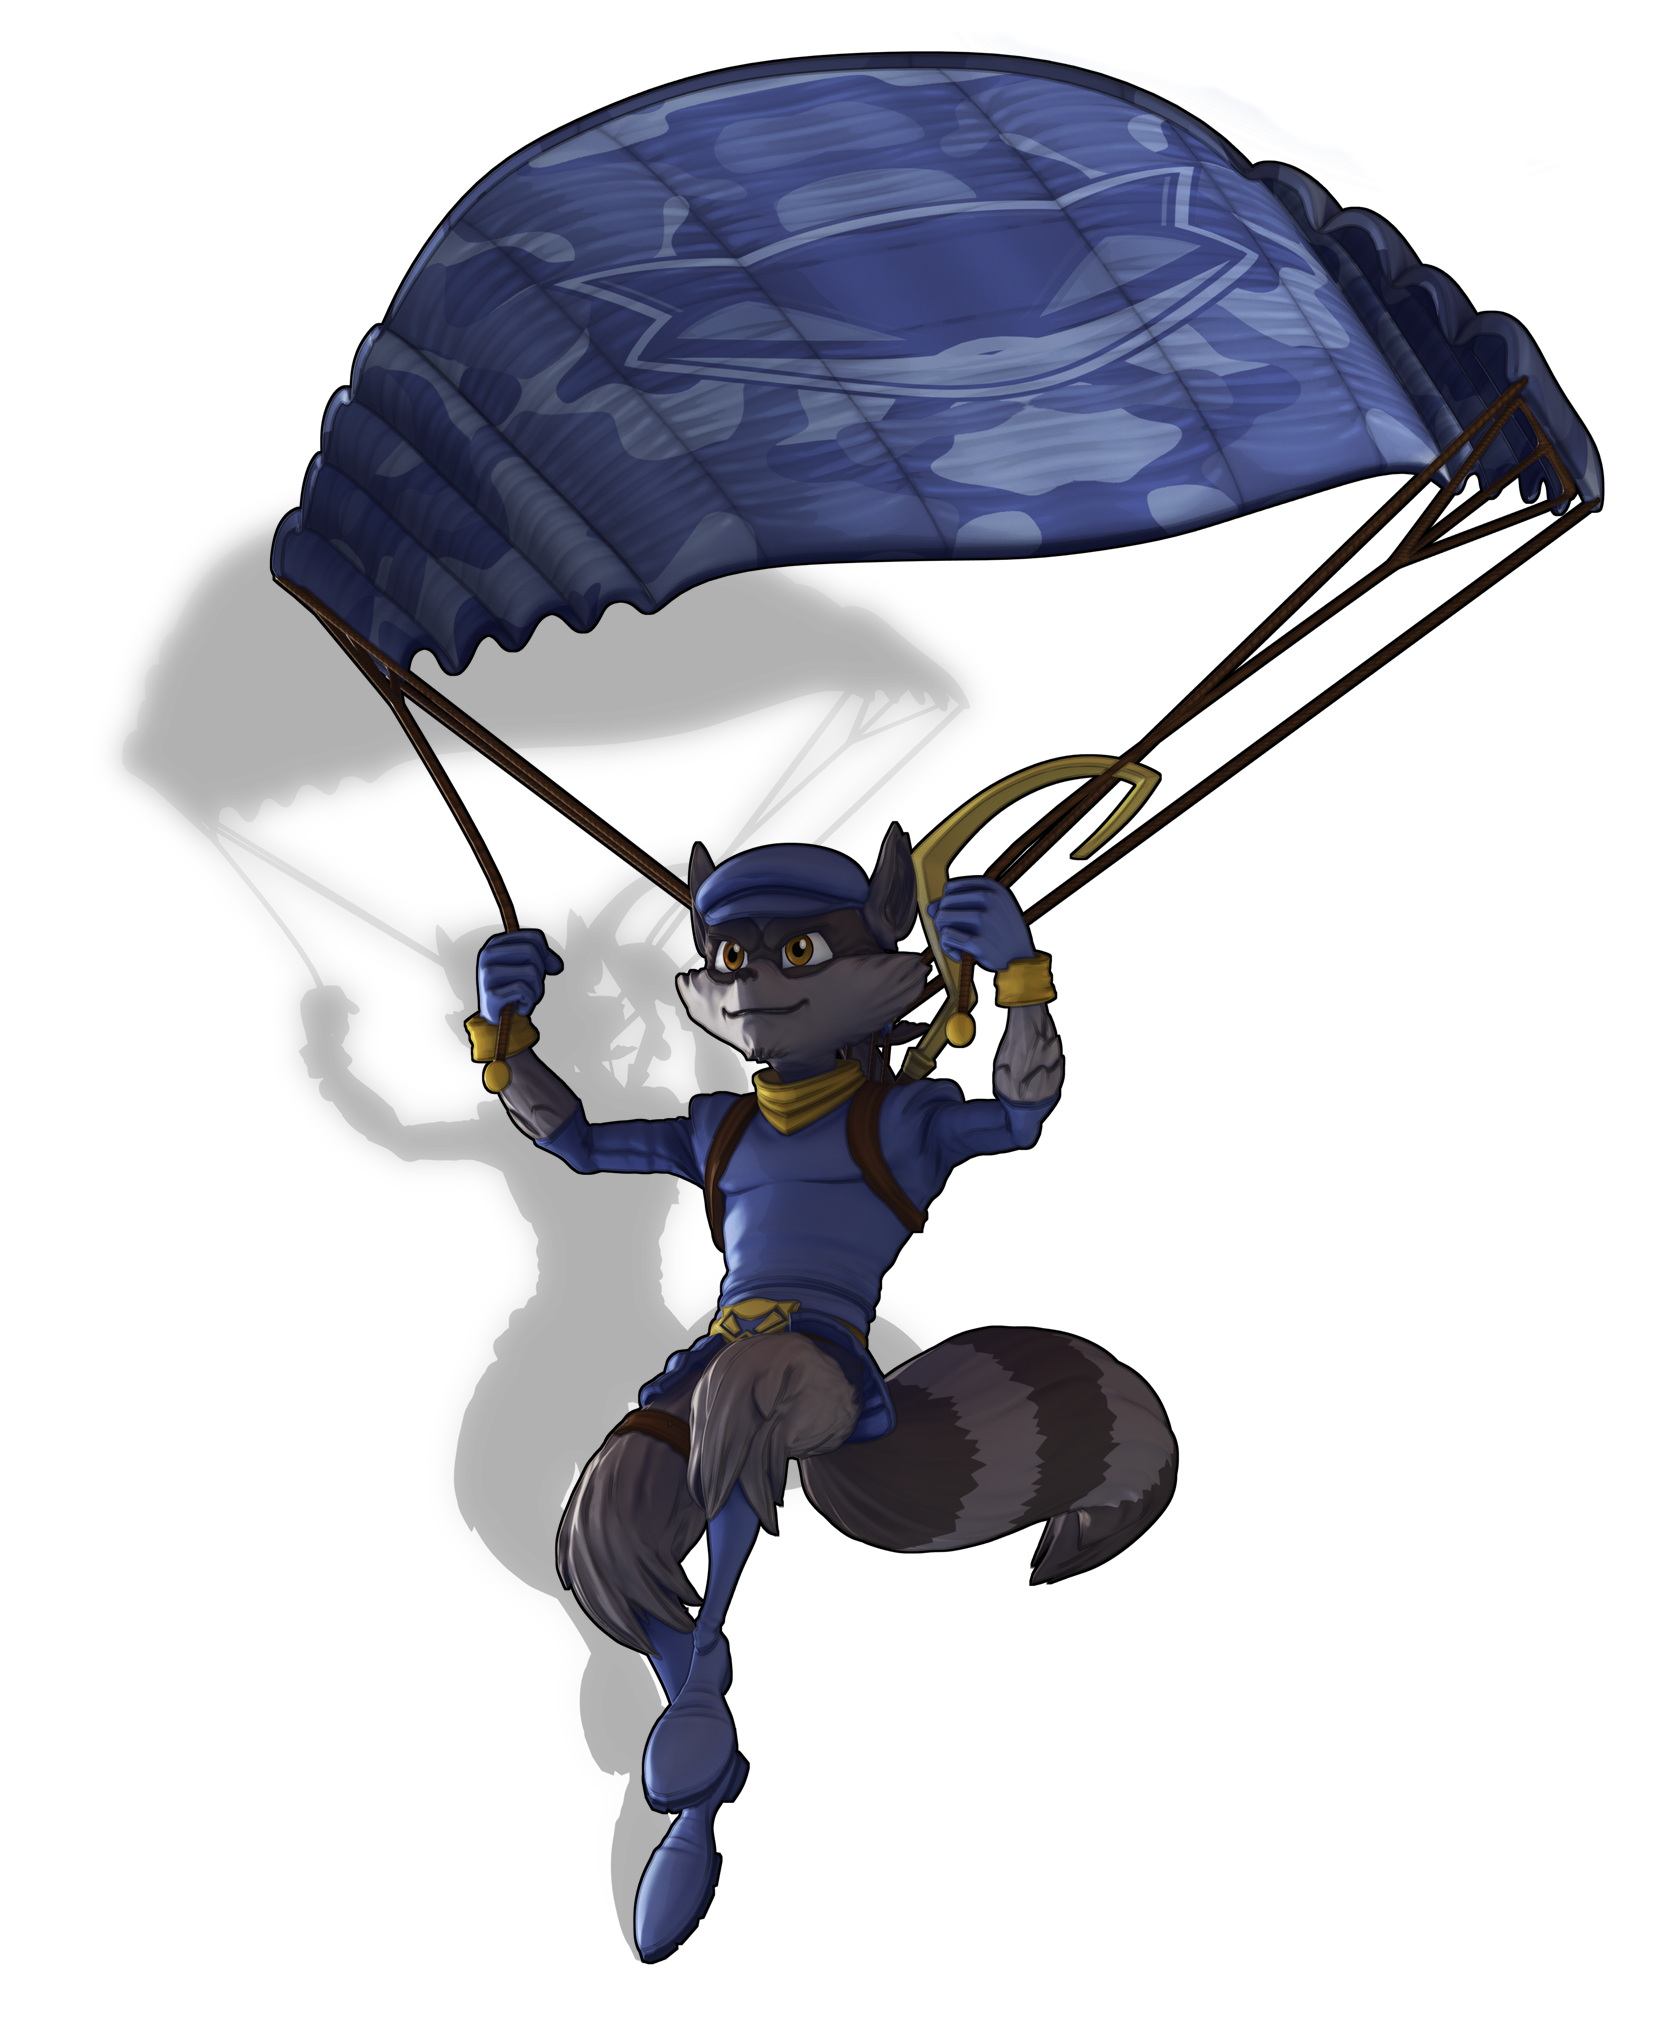 Paraglider Sly Cooper Wiki Fandom Powered By Wikia